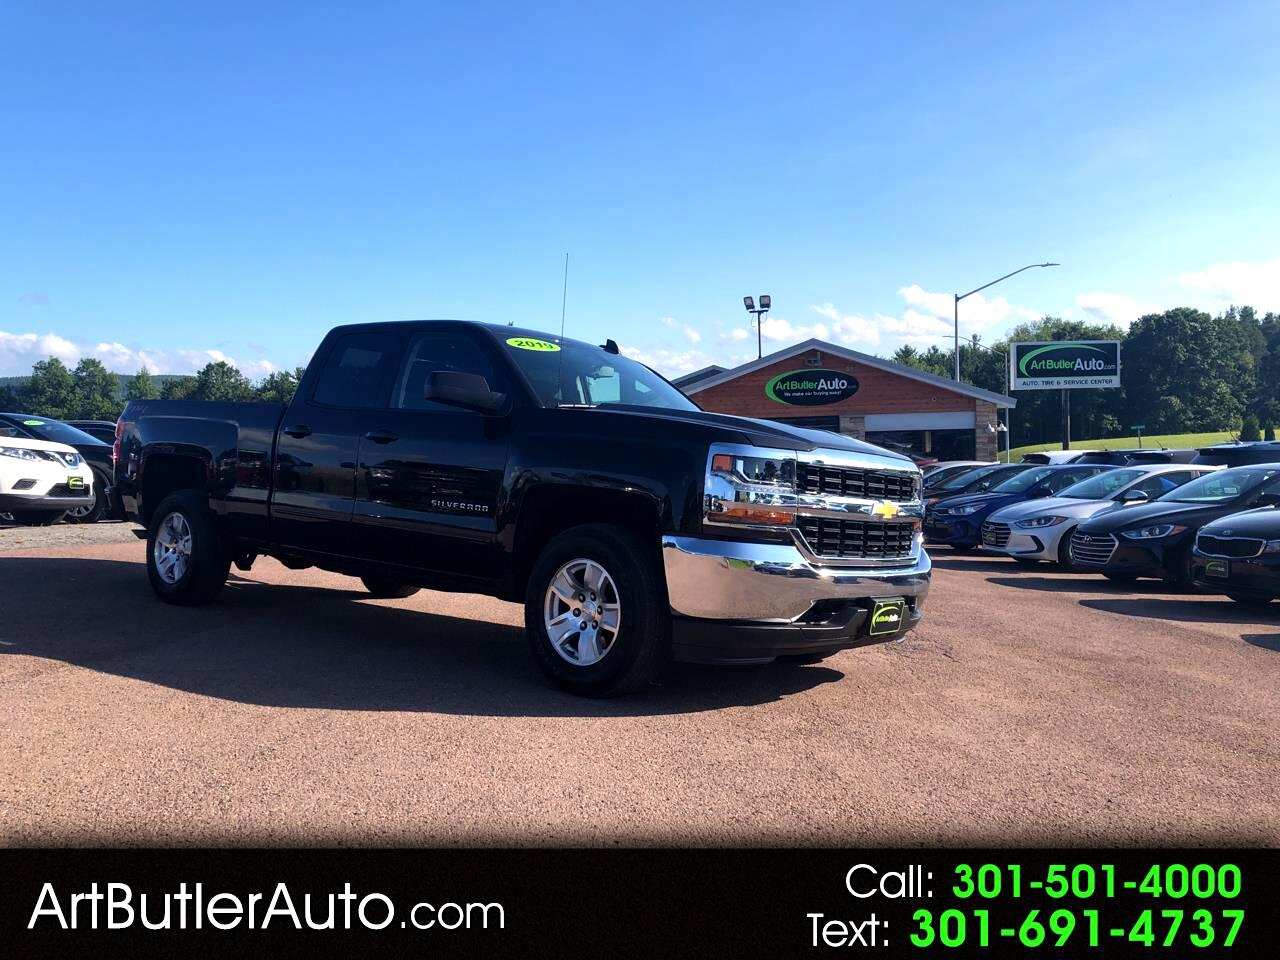 Used Trucks For Sale In Md >> Used Cars For Sale Accident Md 21520 Art Butler Auto Sales